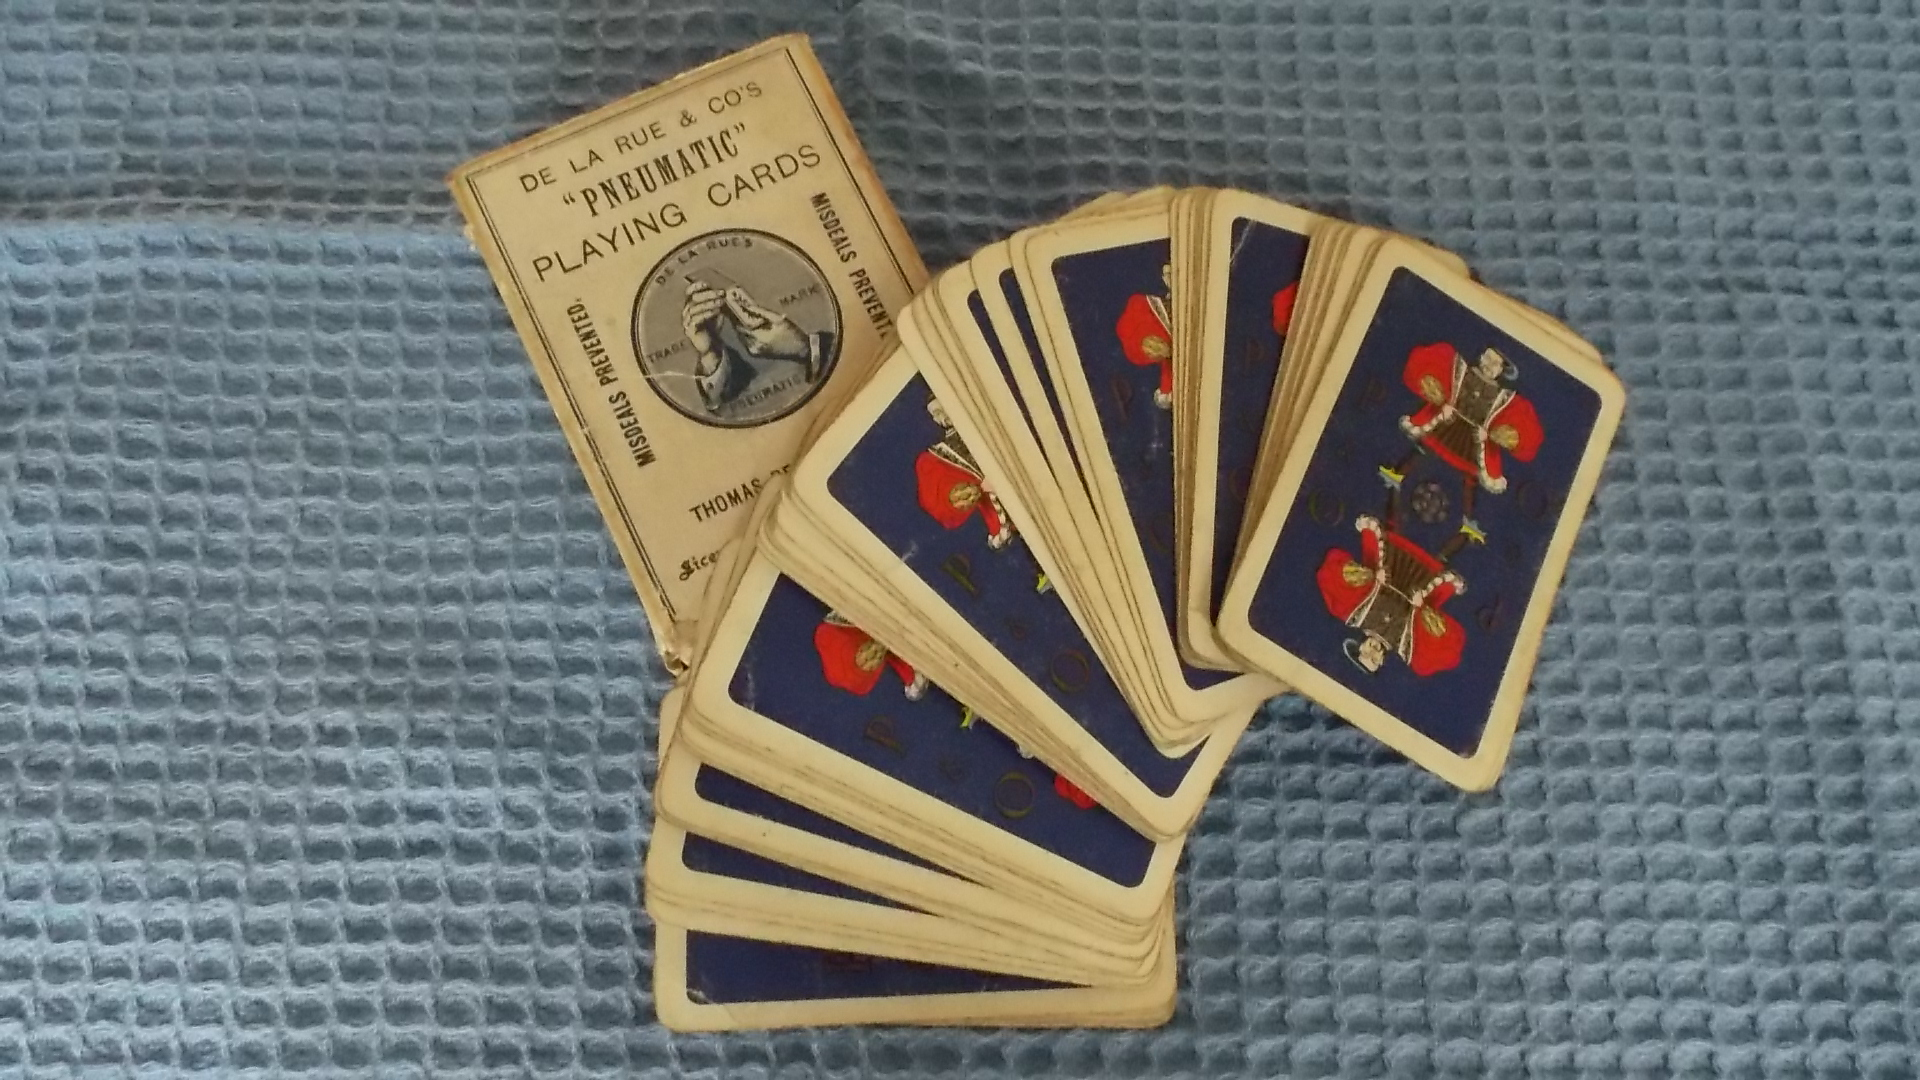 VERY EARLY SET OF USED PLAYING CARDS FROM THE P&O LINE